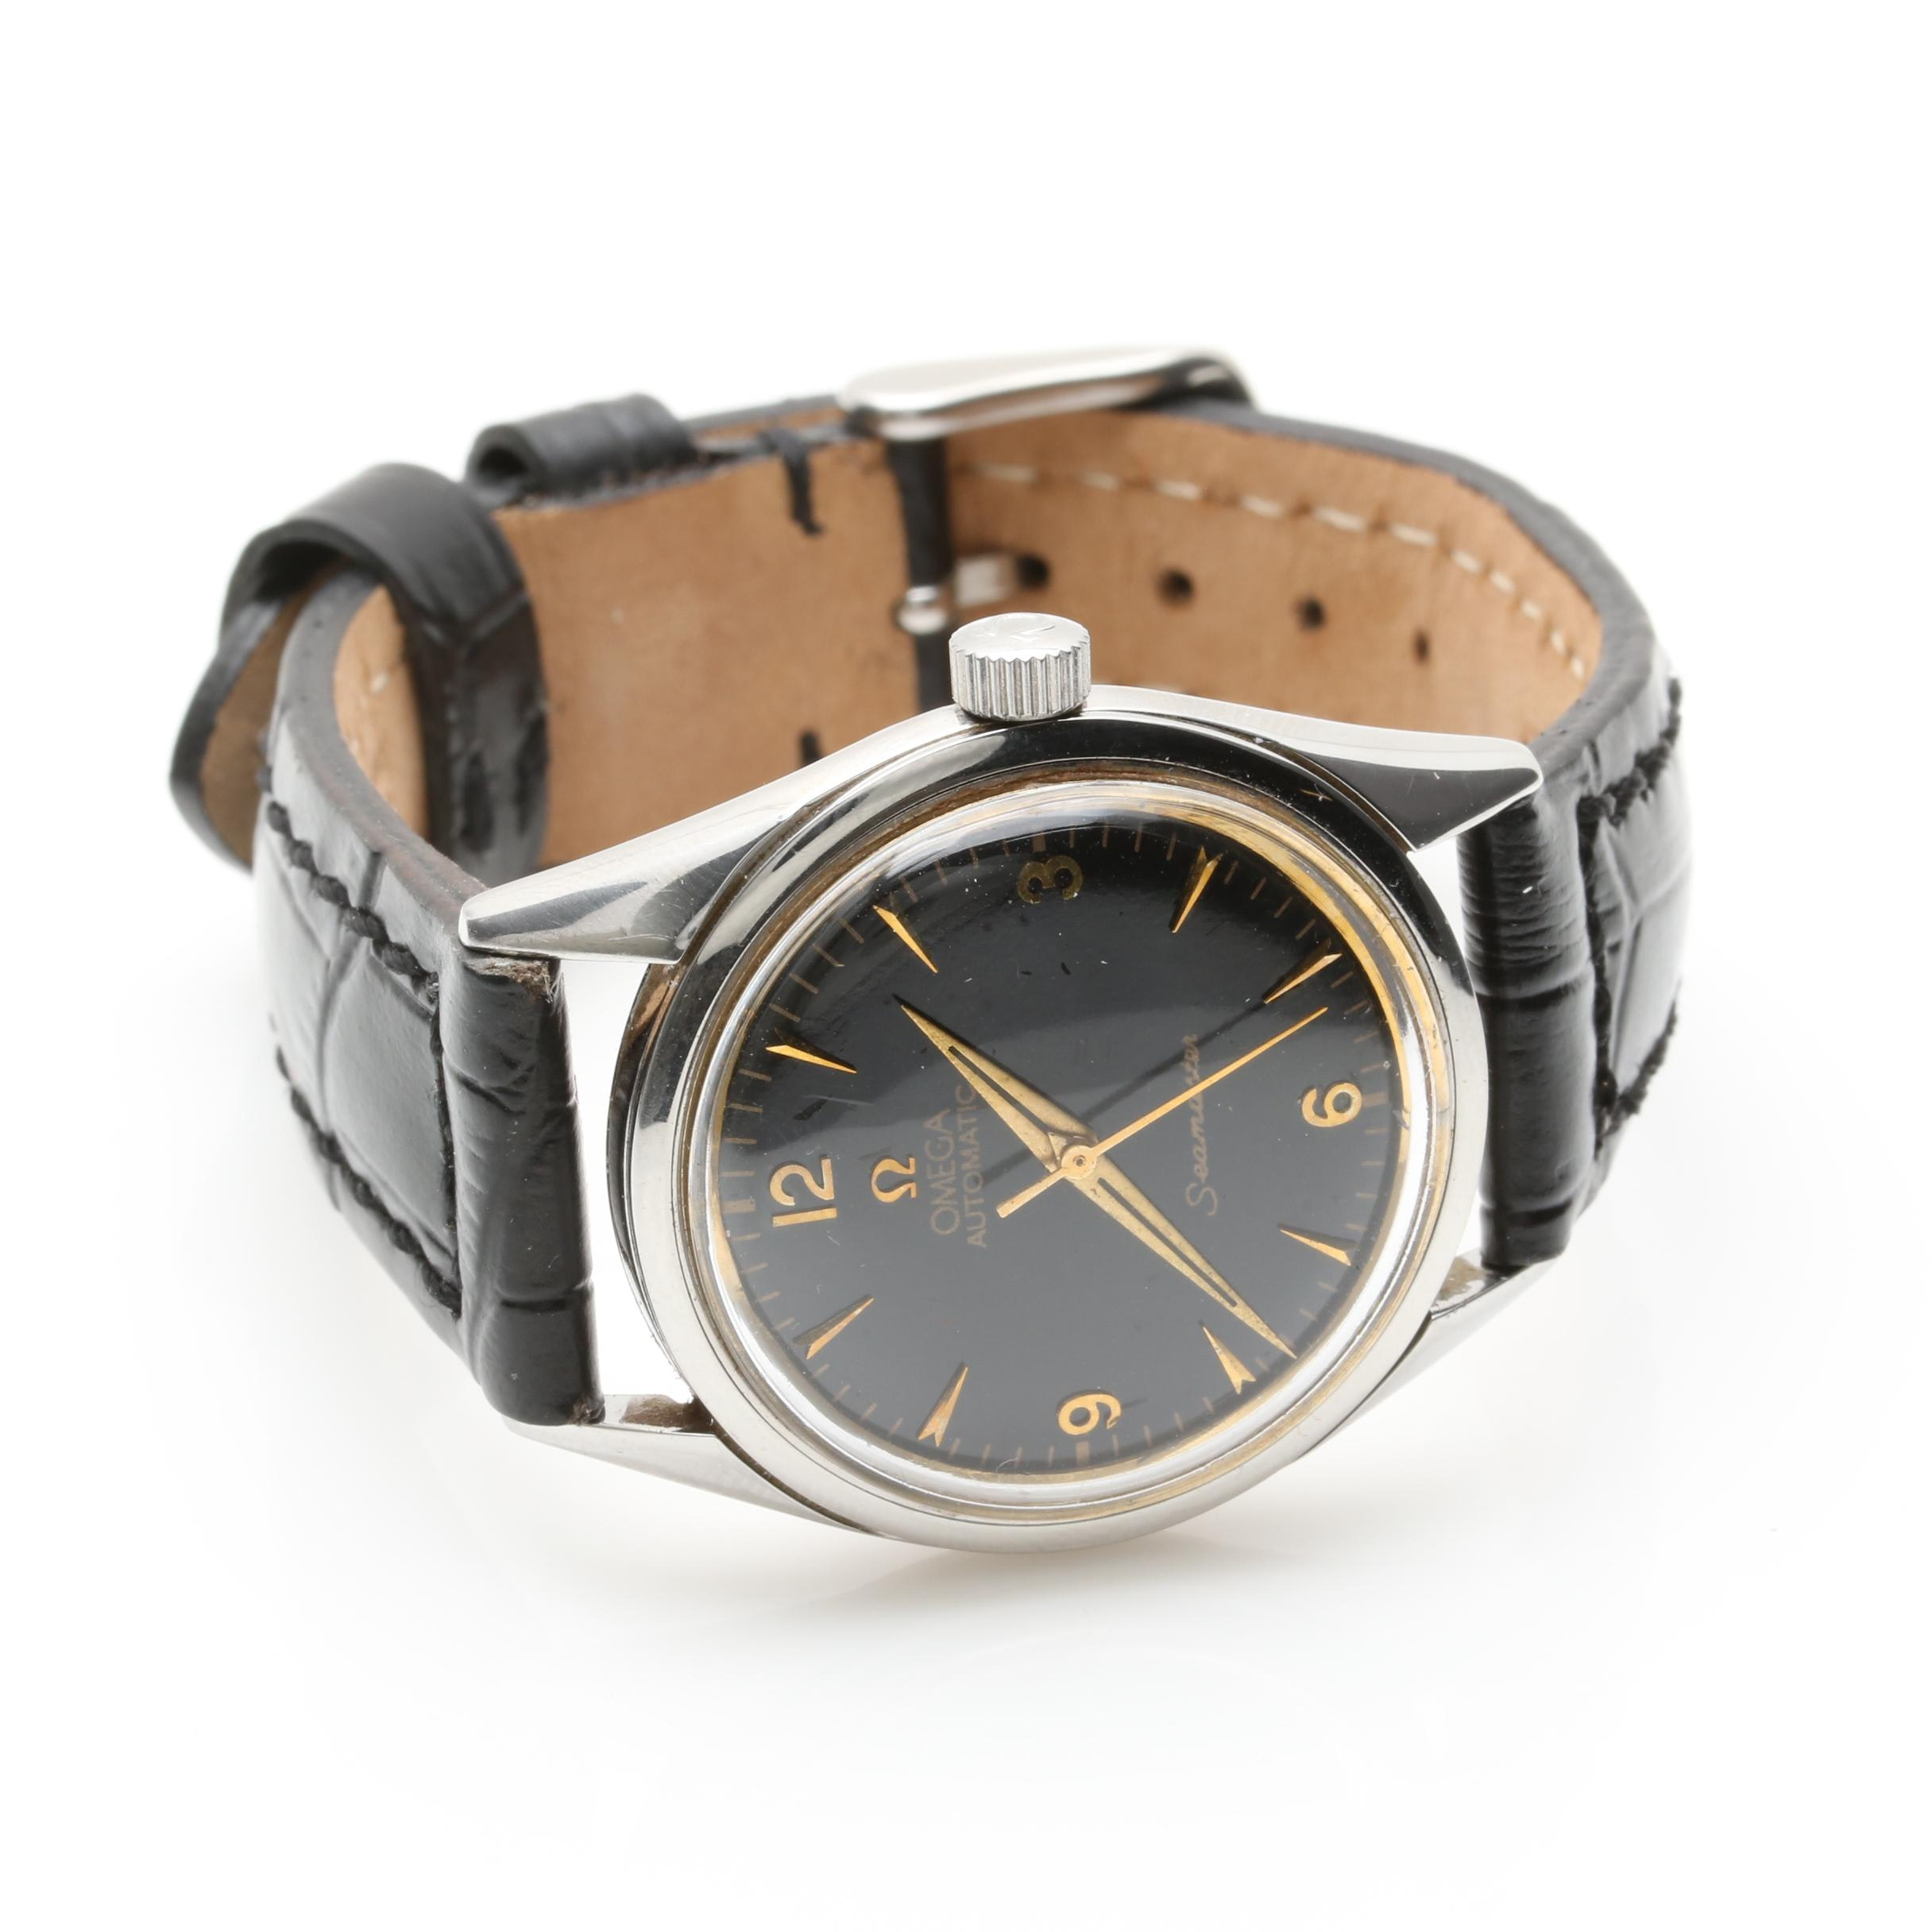 Circa 1950s Omega Automatic Stainless Steel Wristwatch